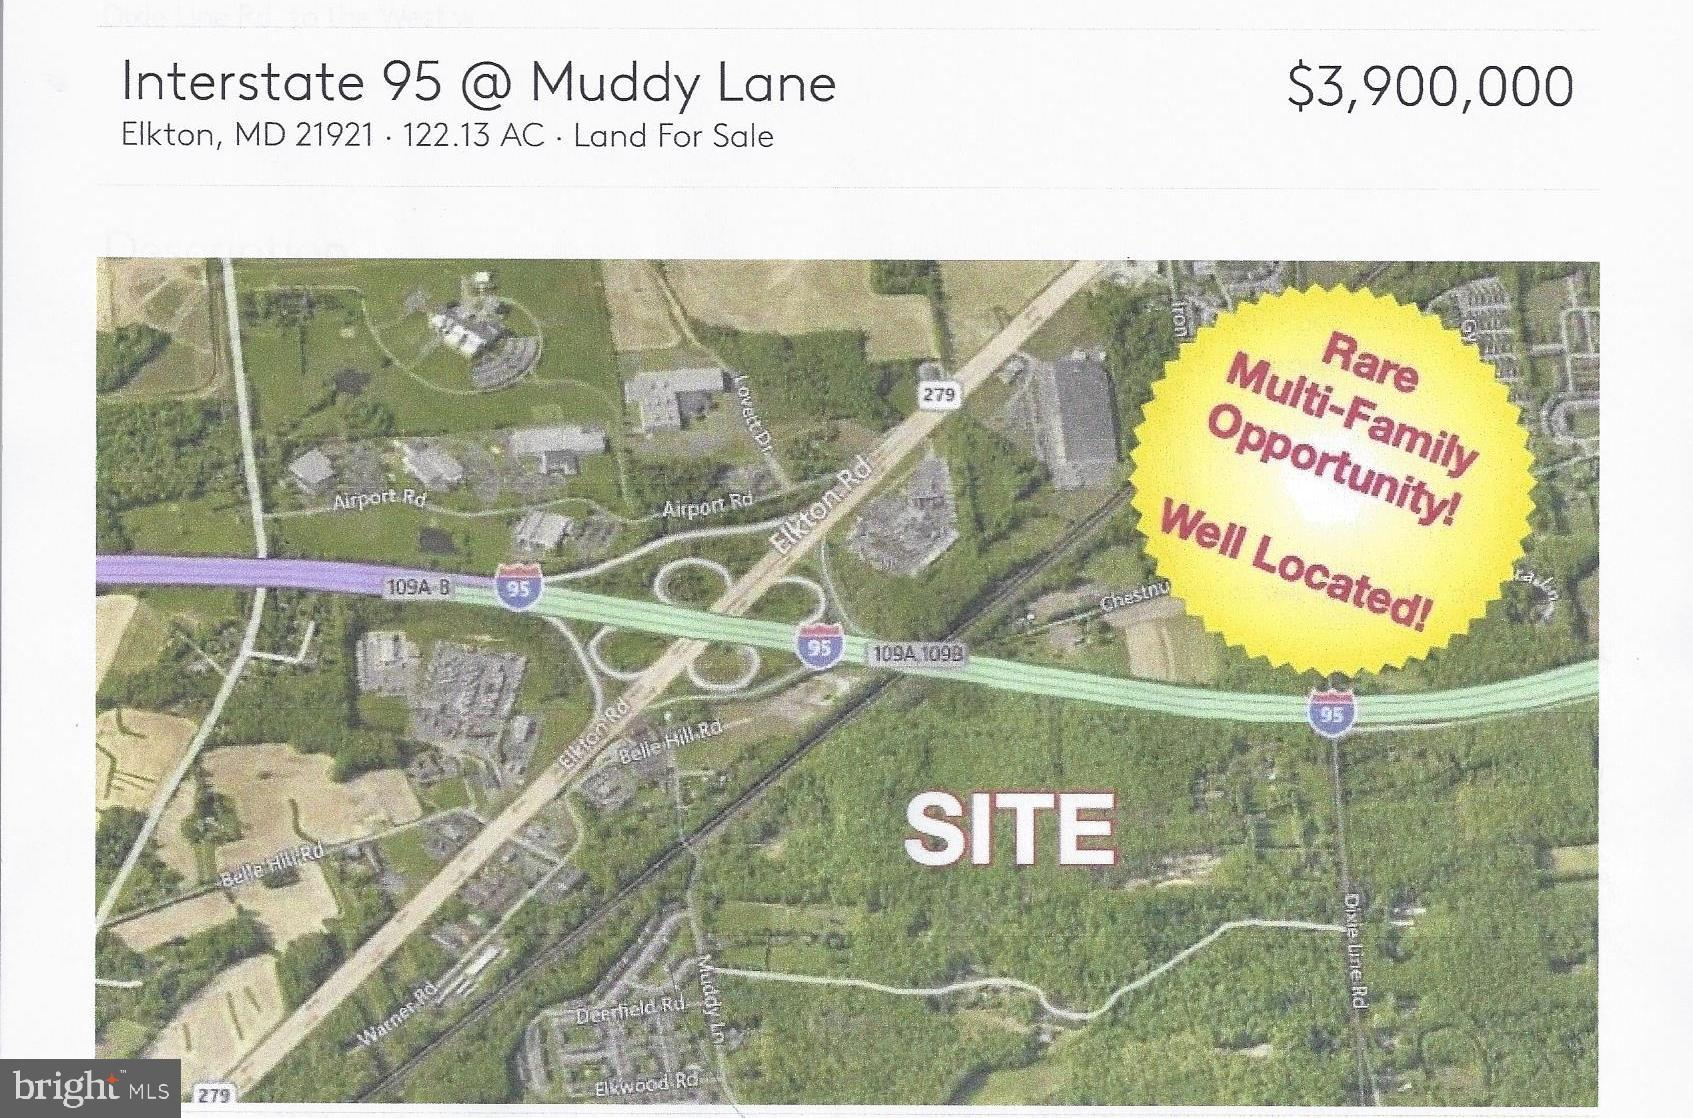 Lot #1 MUDDY LANE, ELKTON, MD 21921